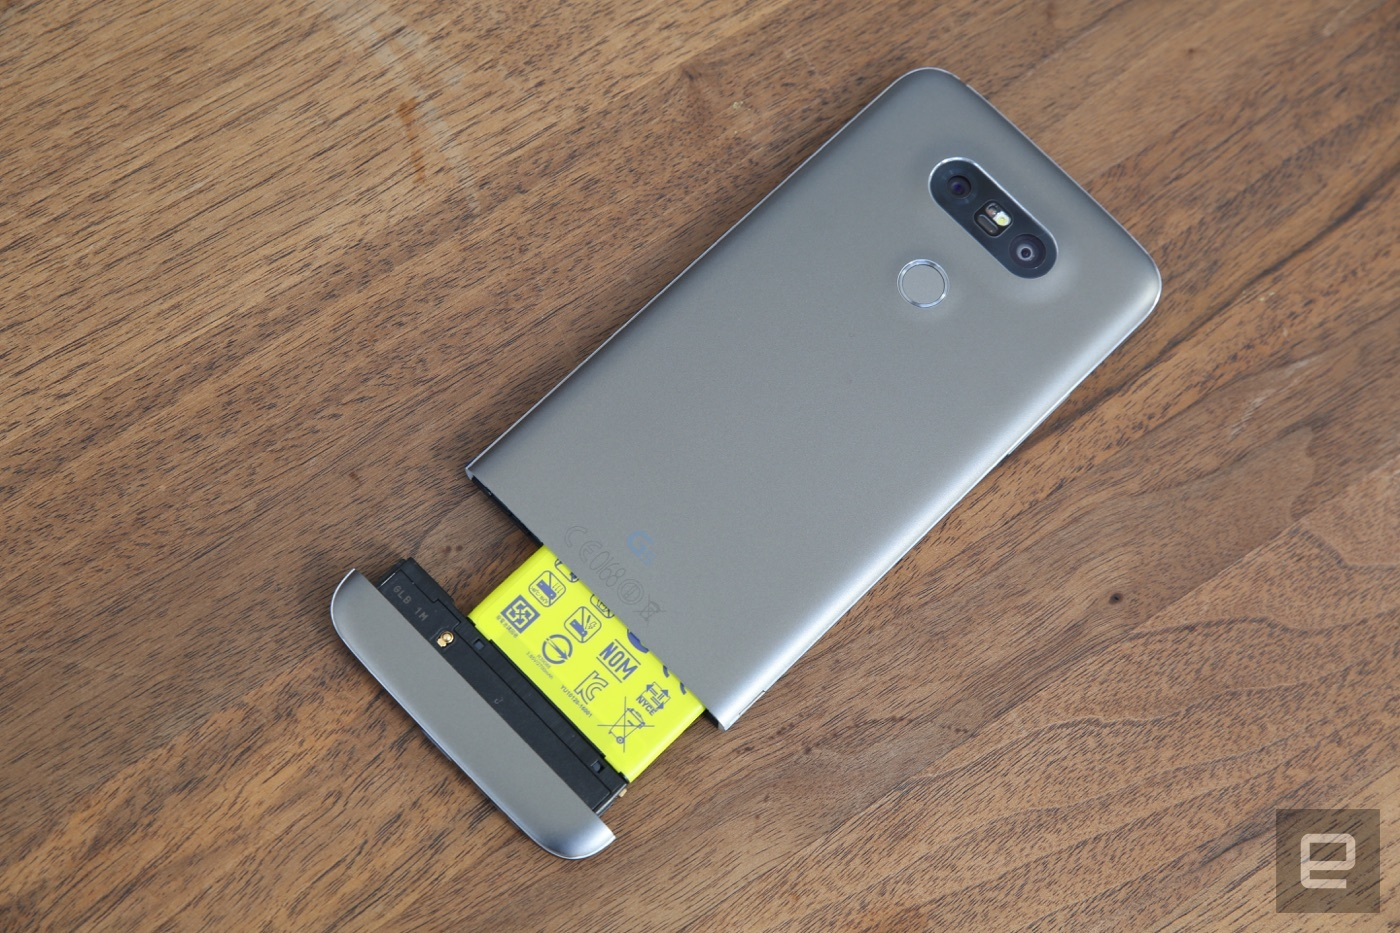 lg g5 oficial mwc 2016 1